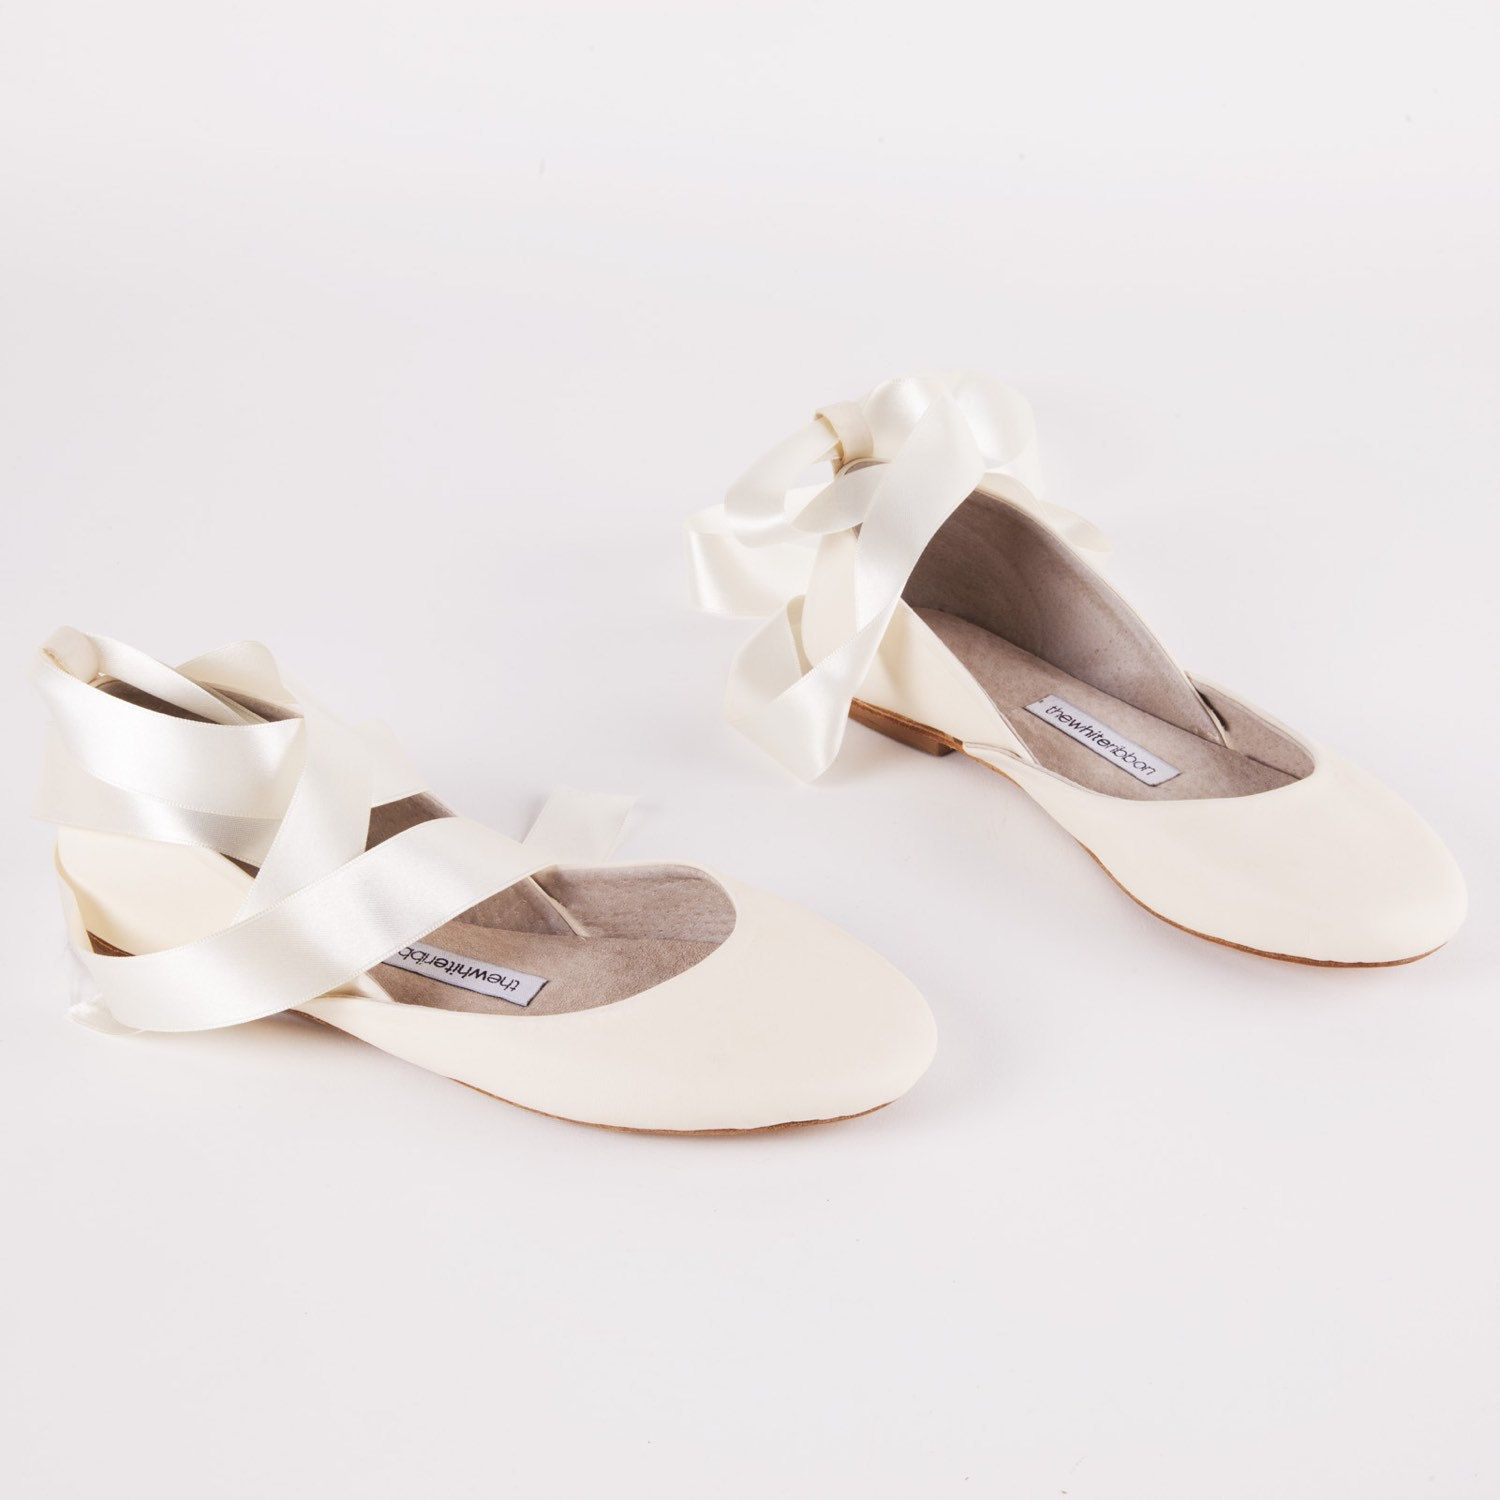 The Wedding Shoes | Bridal Ballet Flats | Wedding Flats for Brides ...